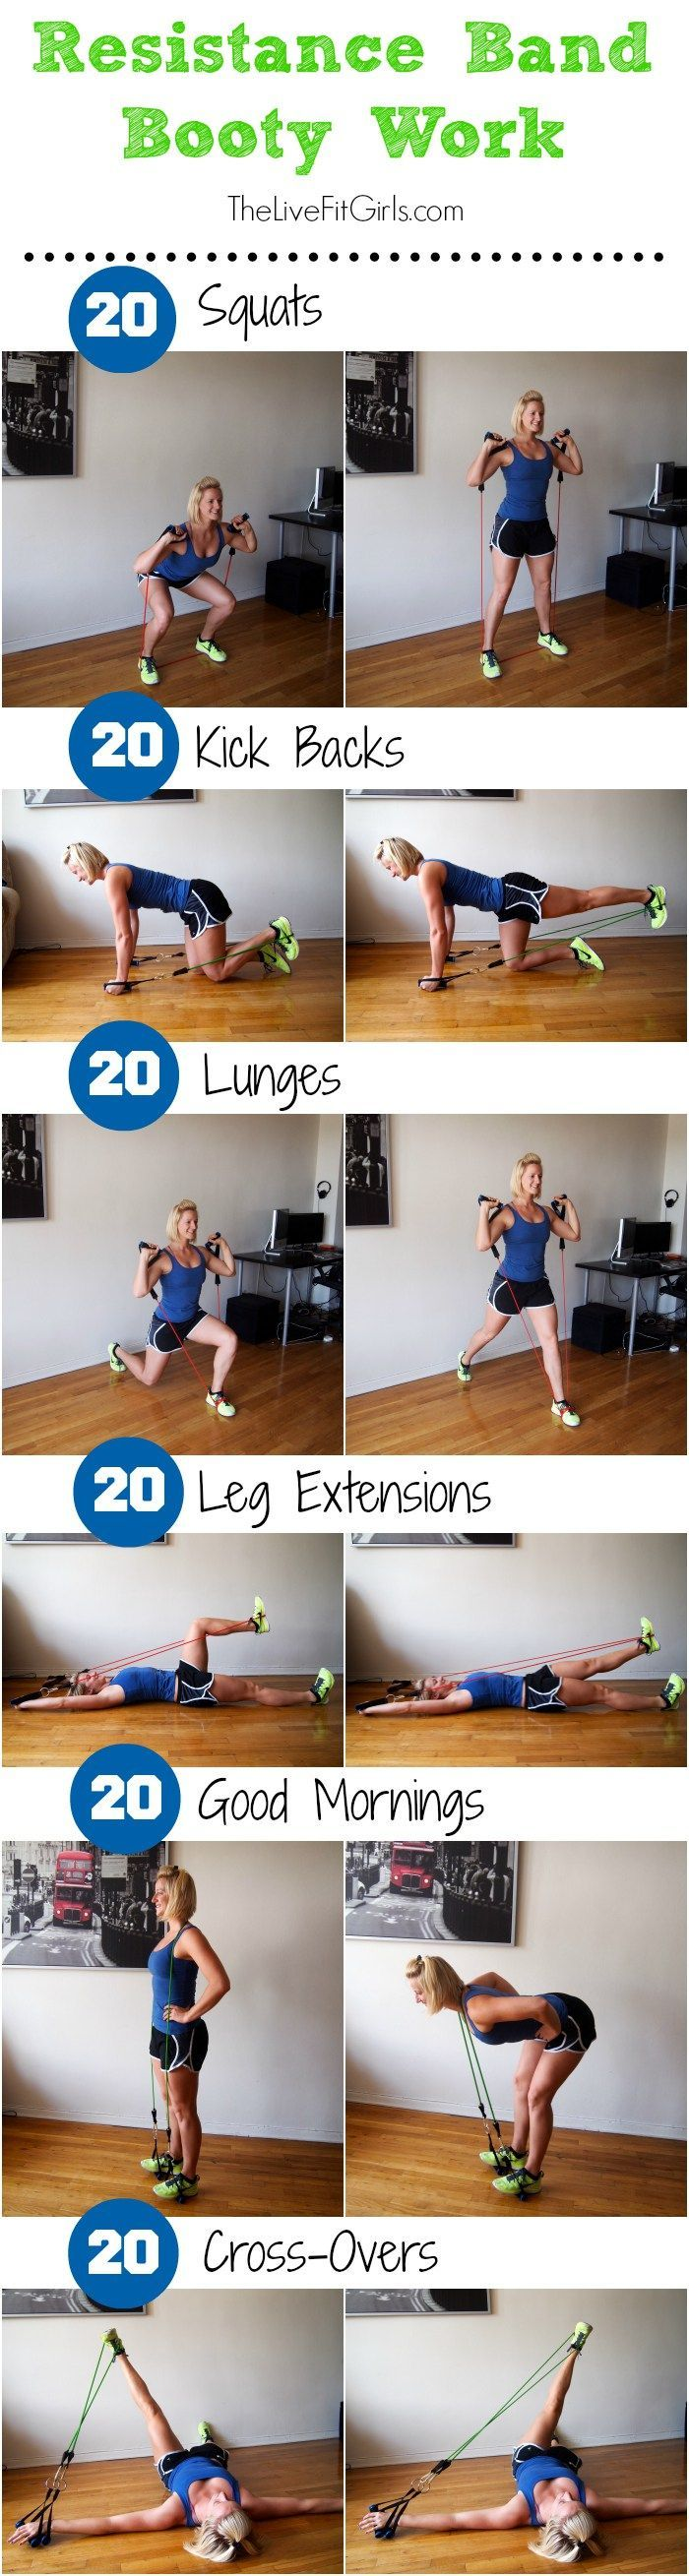 Resistance Band Booty Workout| Posted By: CustomWeightLossProgram.com